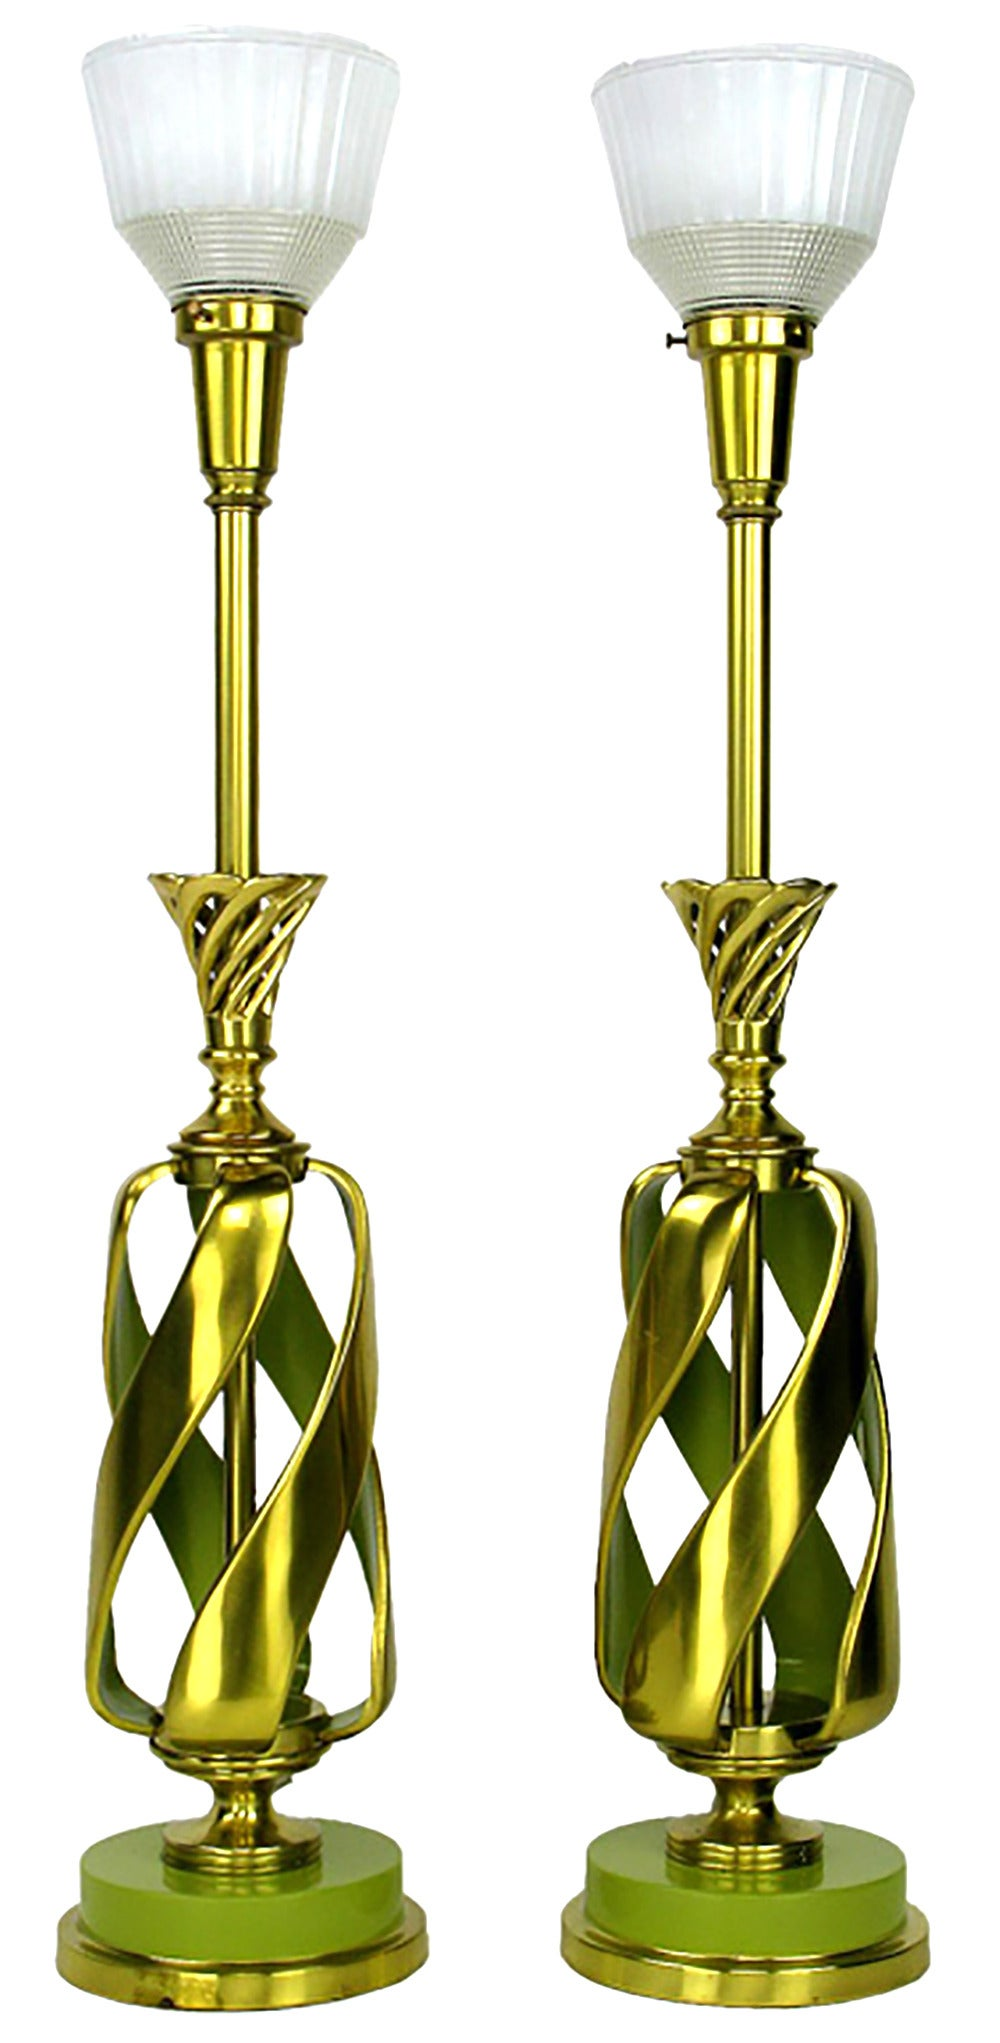 Pair of Rembrandt Lamp Company solid brass table lamps with spiraling open brass body. It is evocative of a pineapple, right up to the cast brass crowns signifying the leaves. Brass stem and milk-glass Holophane diffusers with lacquered chartreuse